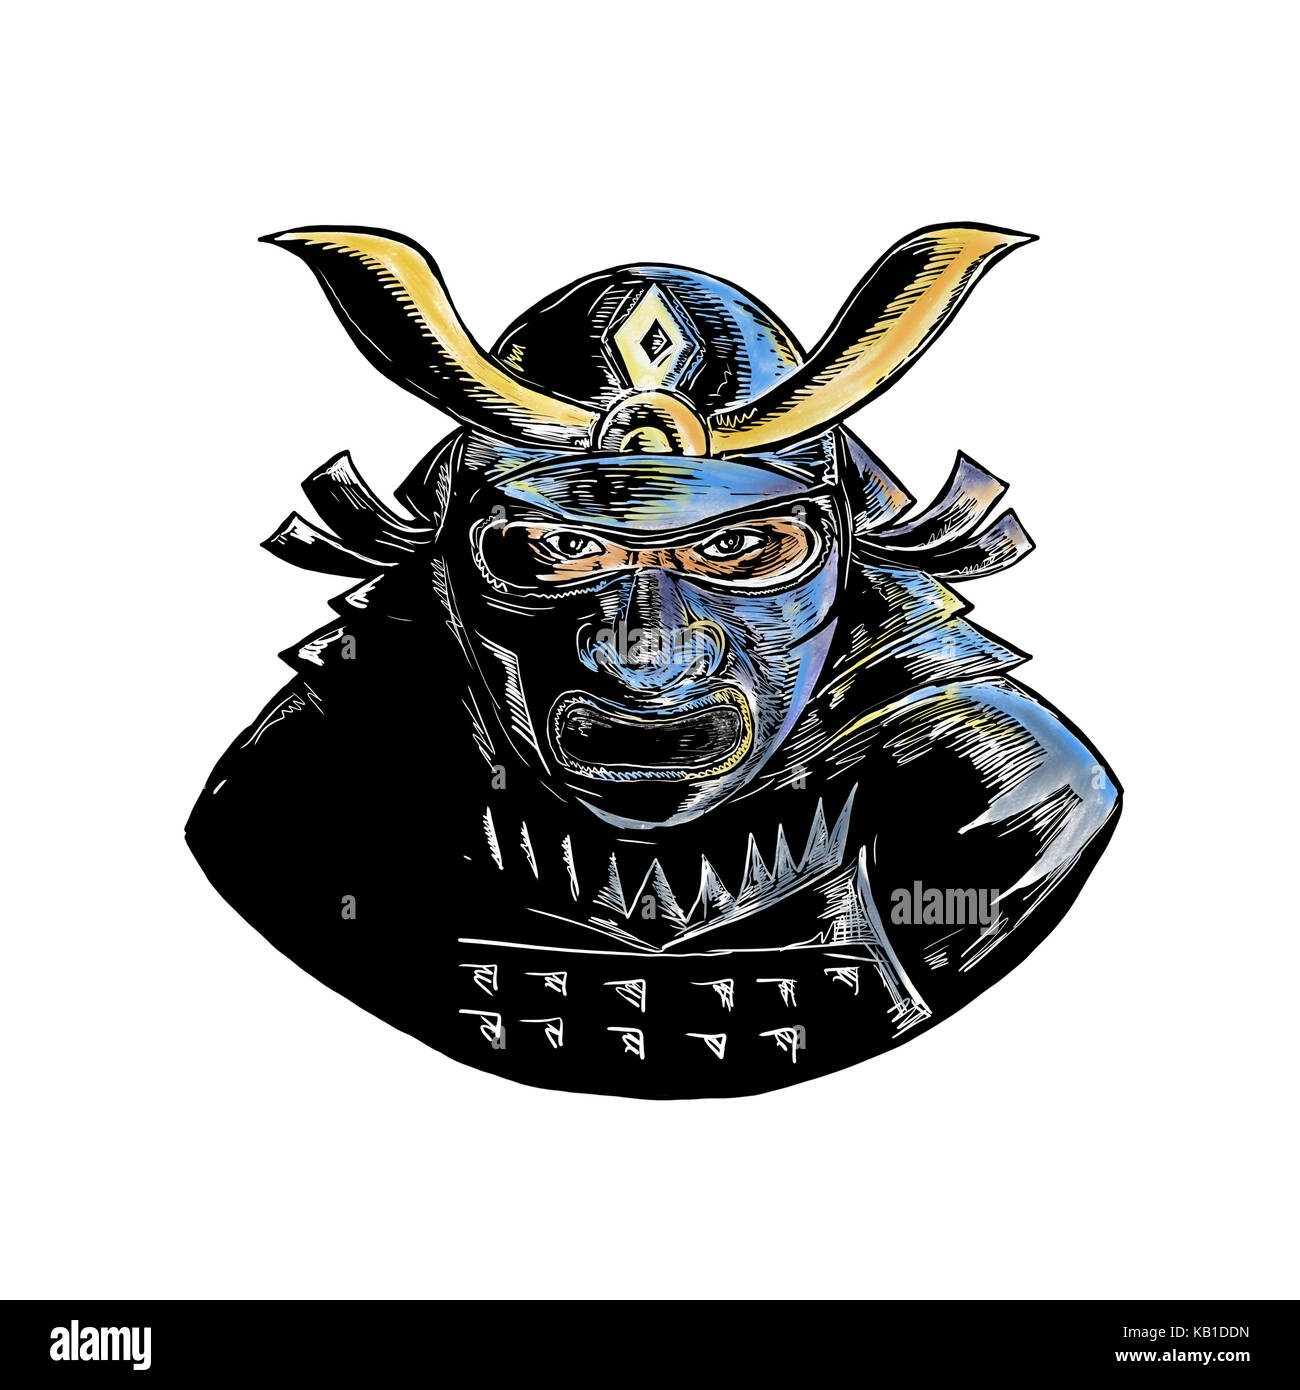 Woodcut Style Illustration Of A Samurai Warrior Wearing Facial Armor